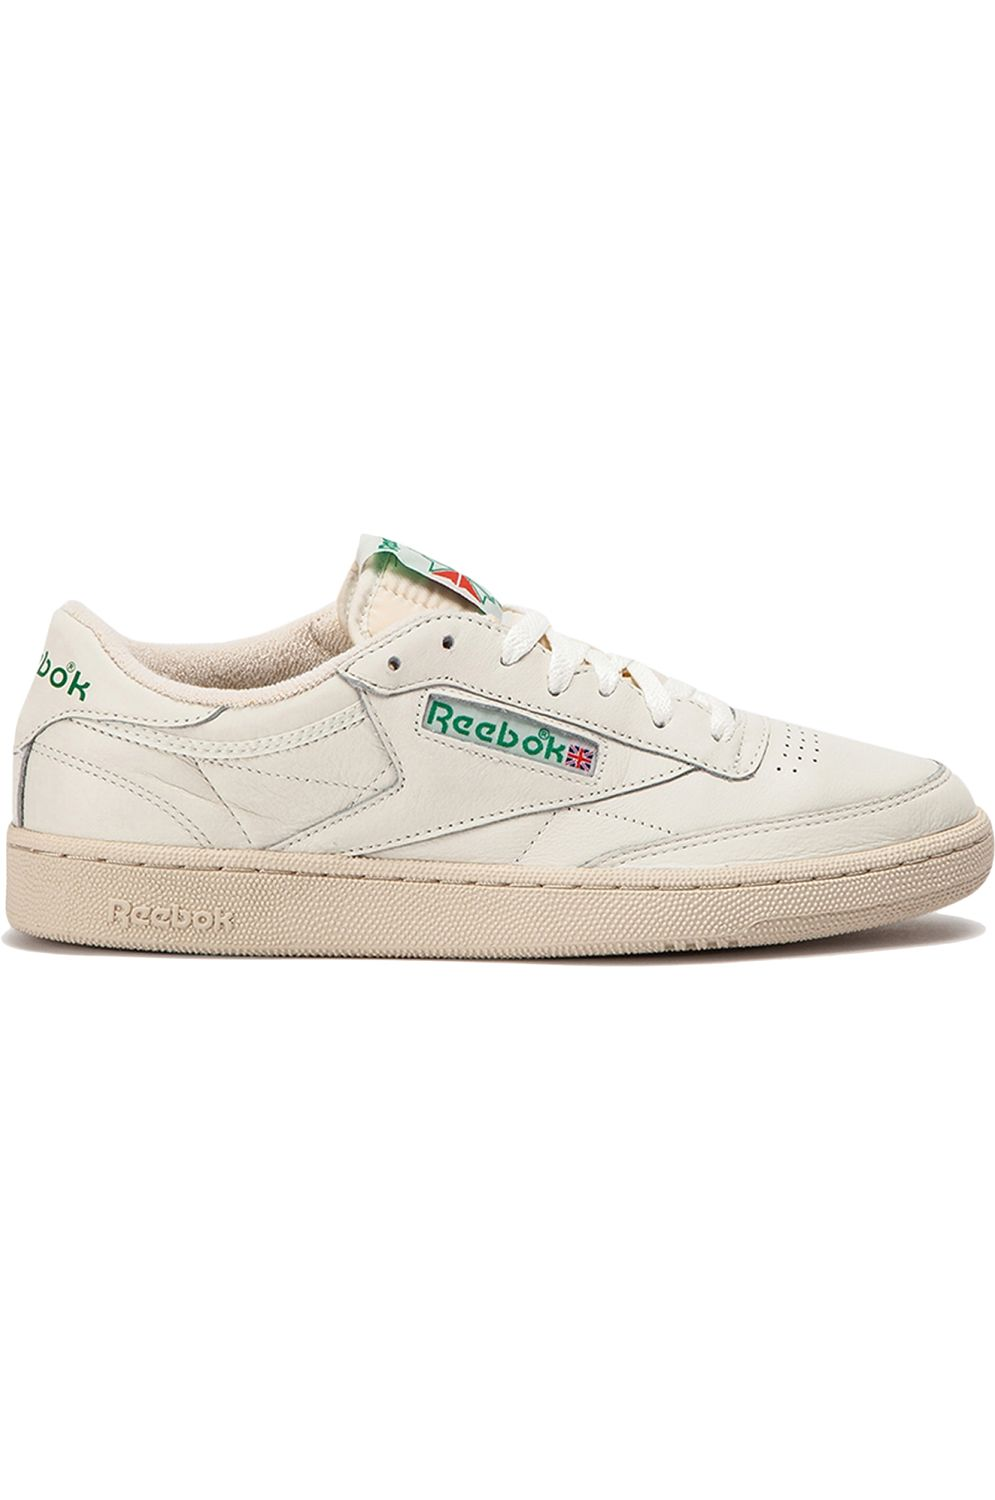 Reebok Shoes CLUB C 1985 TV Top-Chalk/Paperwhite/Glen Green